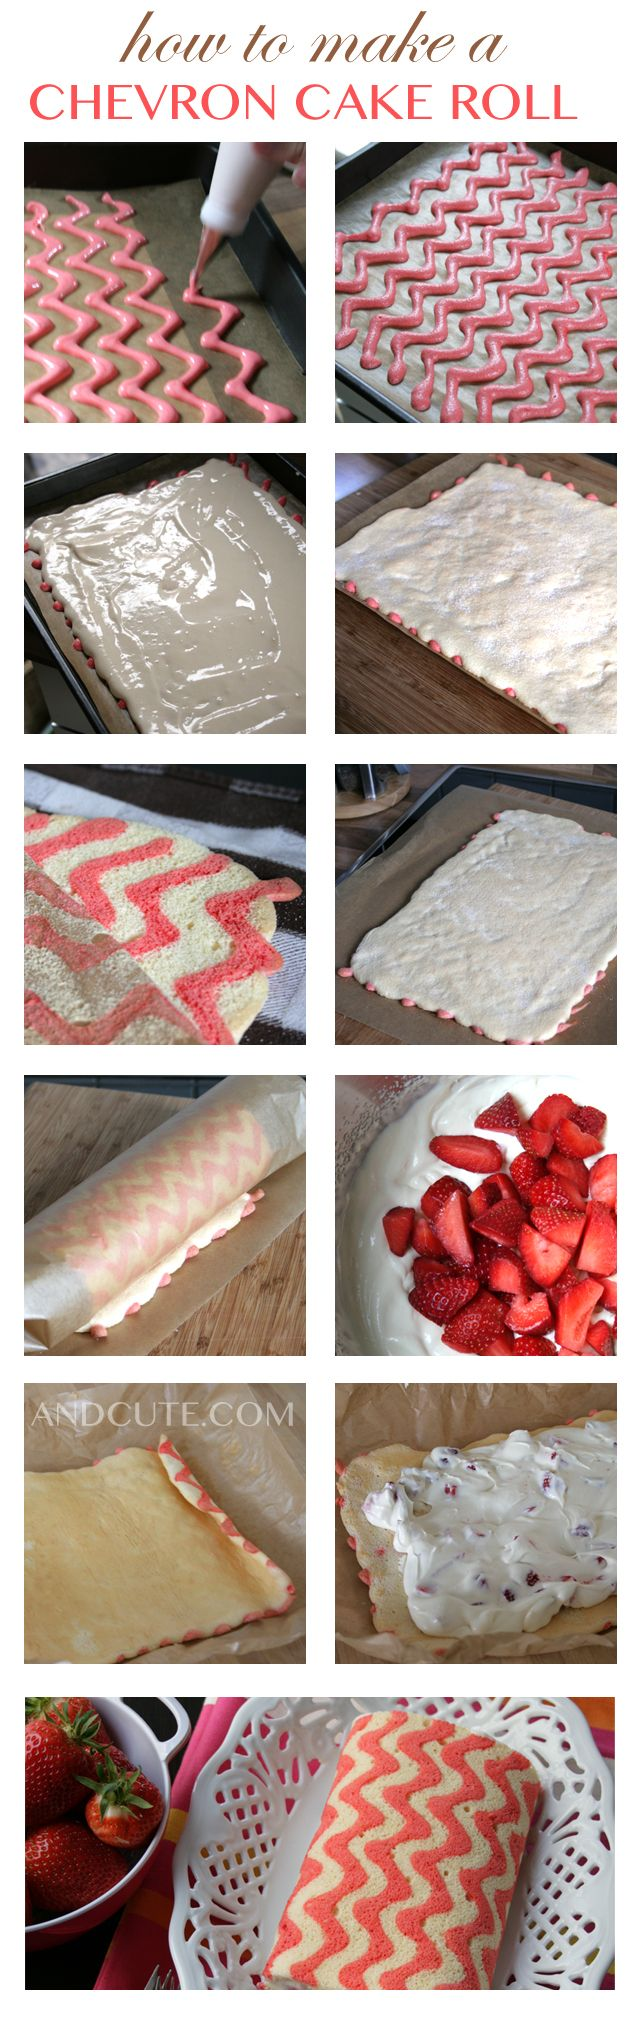 HOW TO: Make a Chevron Cake Roll #howto #omg #chevron